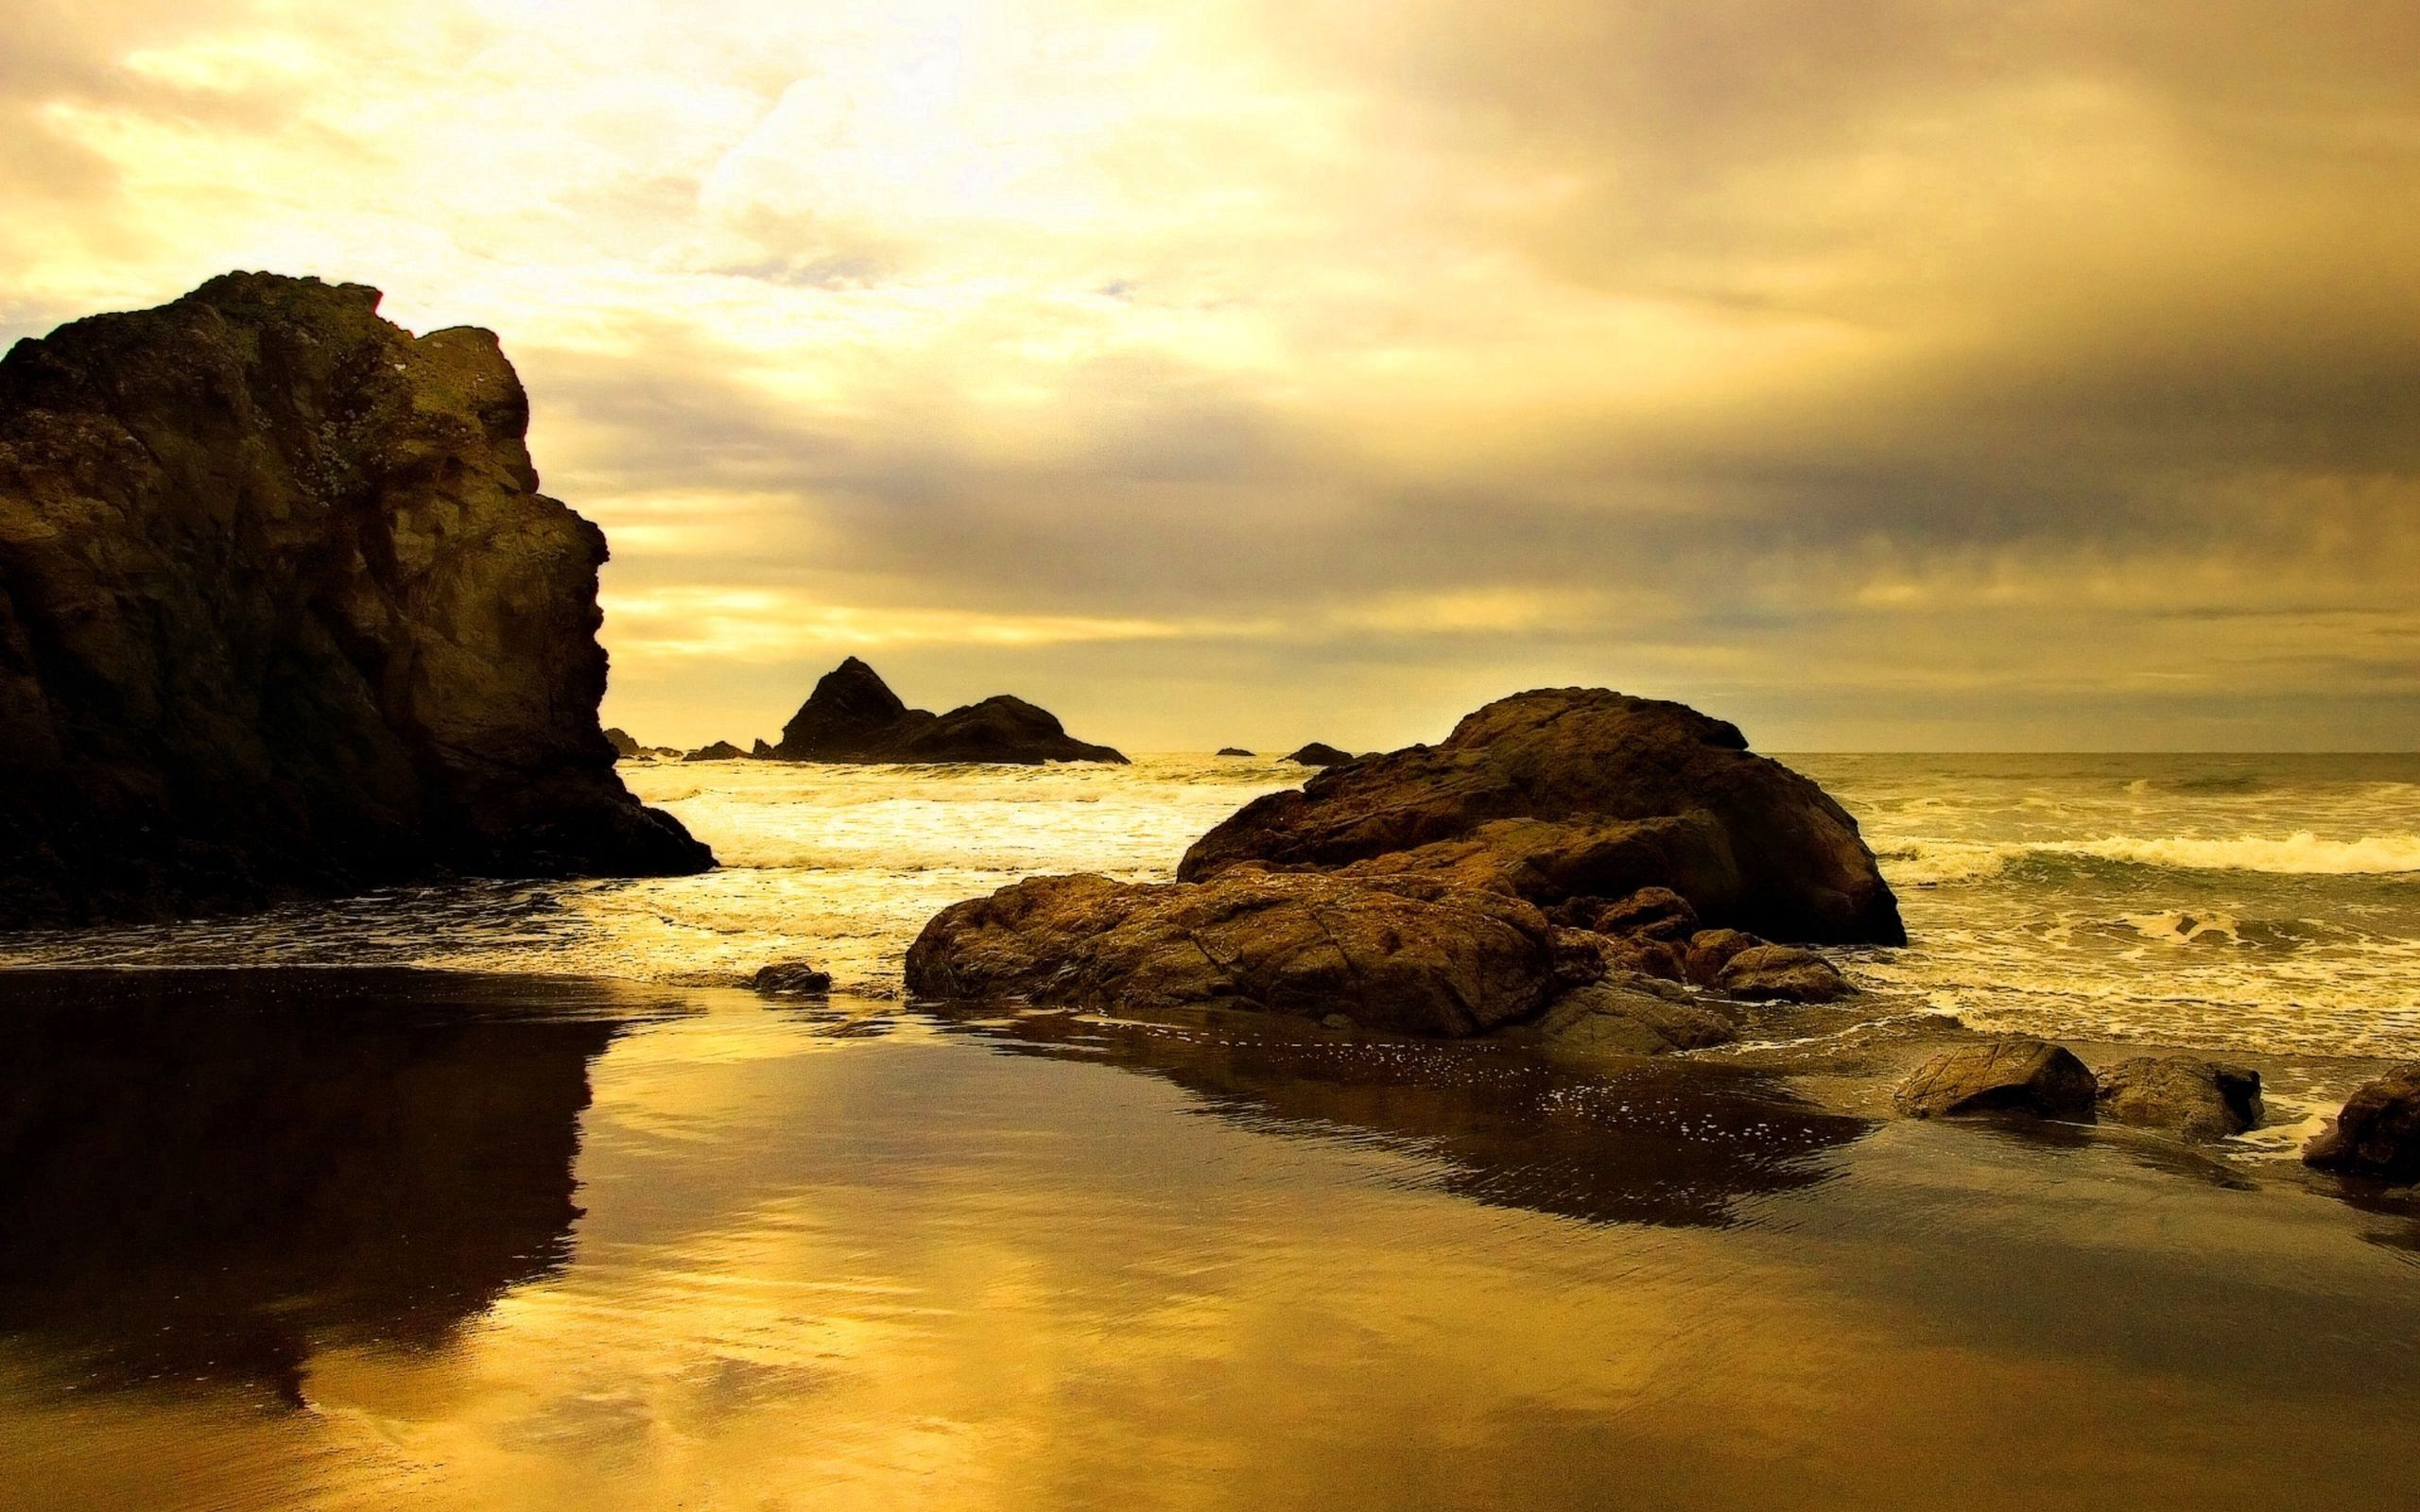 51967 download wallpaper Nature, Sea, Surf, Stones, Shore, Bank screensavers and pictures for free